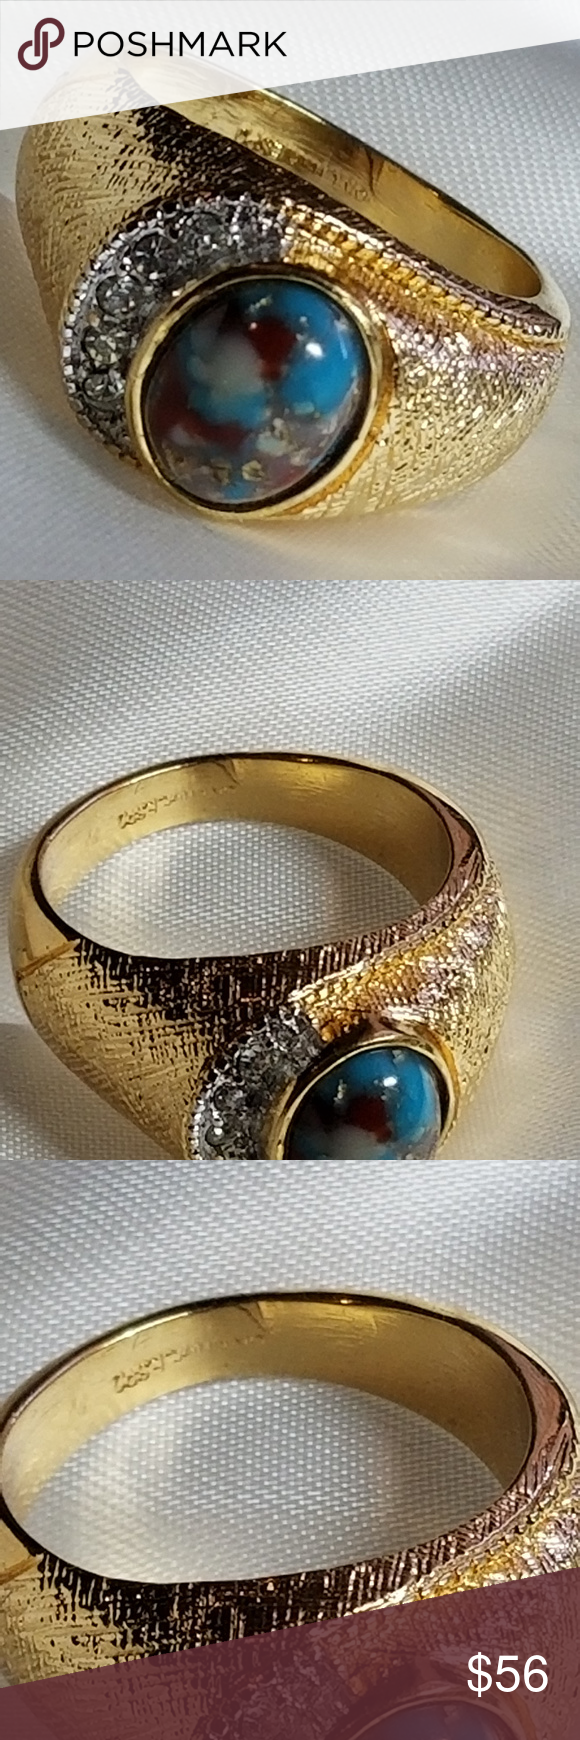 Men Ring Turquoise Veined With Gold Ring Cz Men Ring Turquoise Veined With Gold Ring Cz Diamond Brilliant 18kt Hge Esp Gold Rings Rings For Men Turquoise Rings